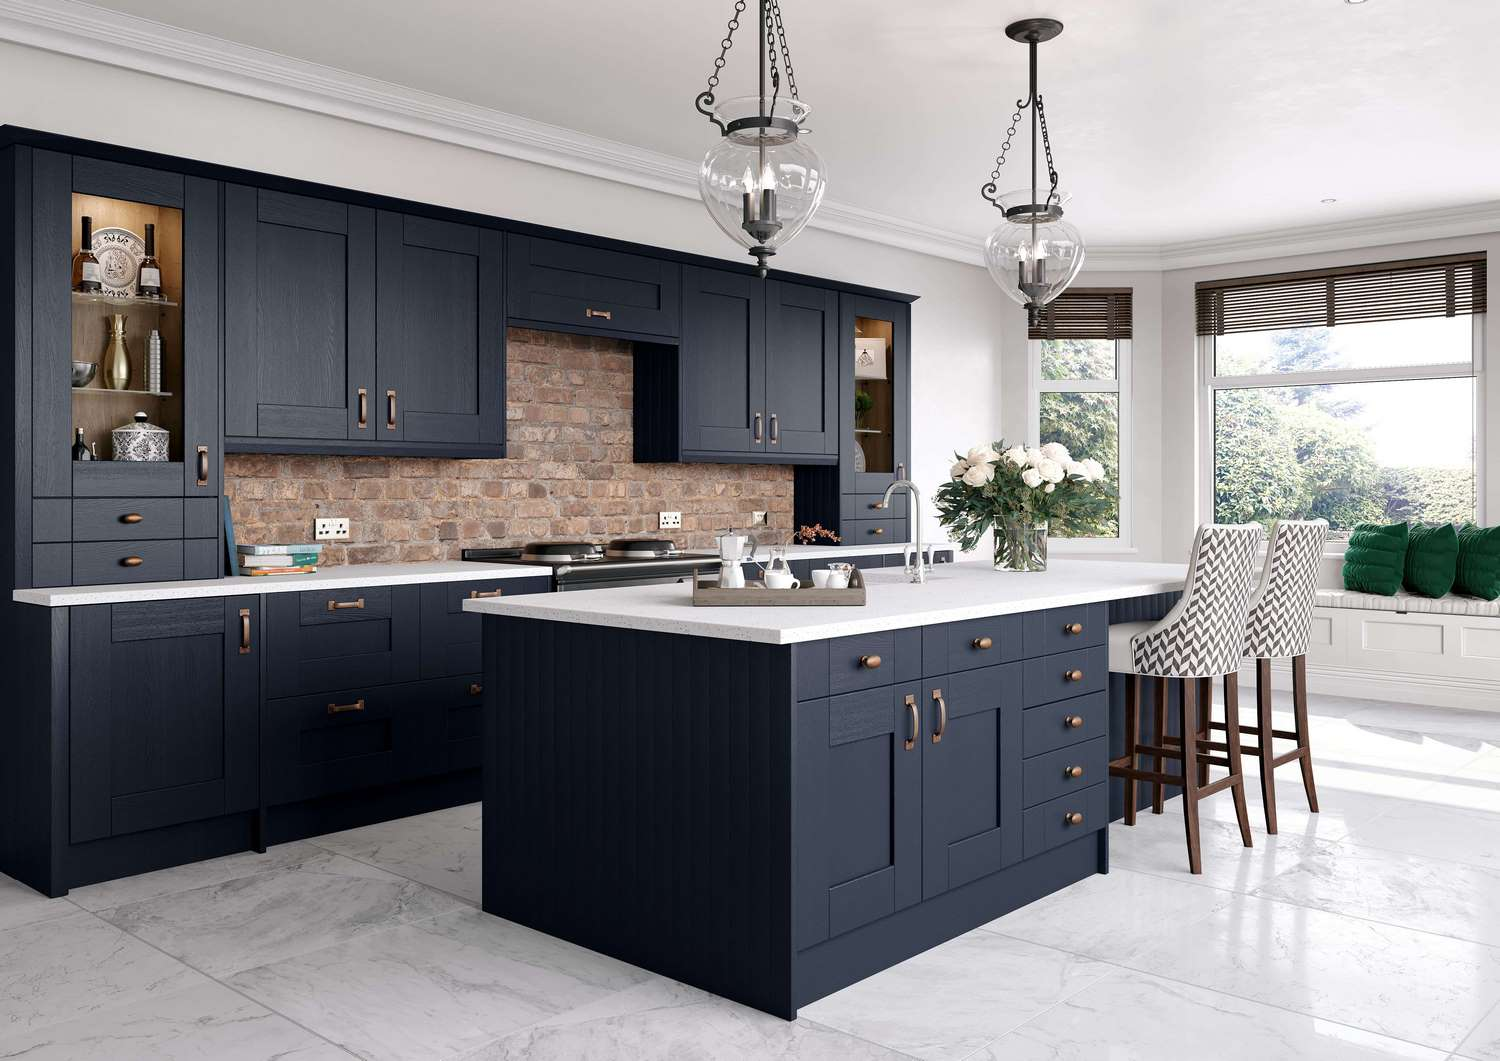 New Traditional fitted Kitchens in indigo 1 TKC-kitchen pic